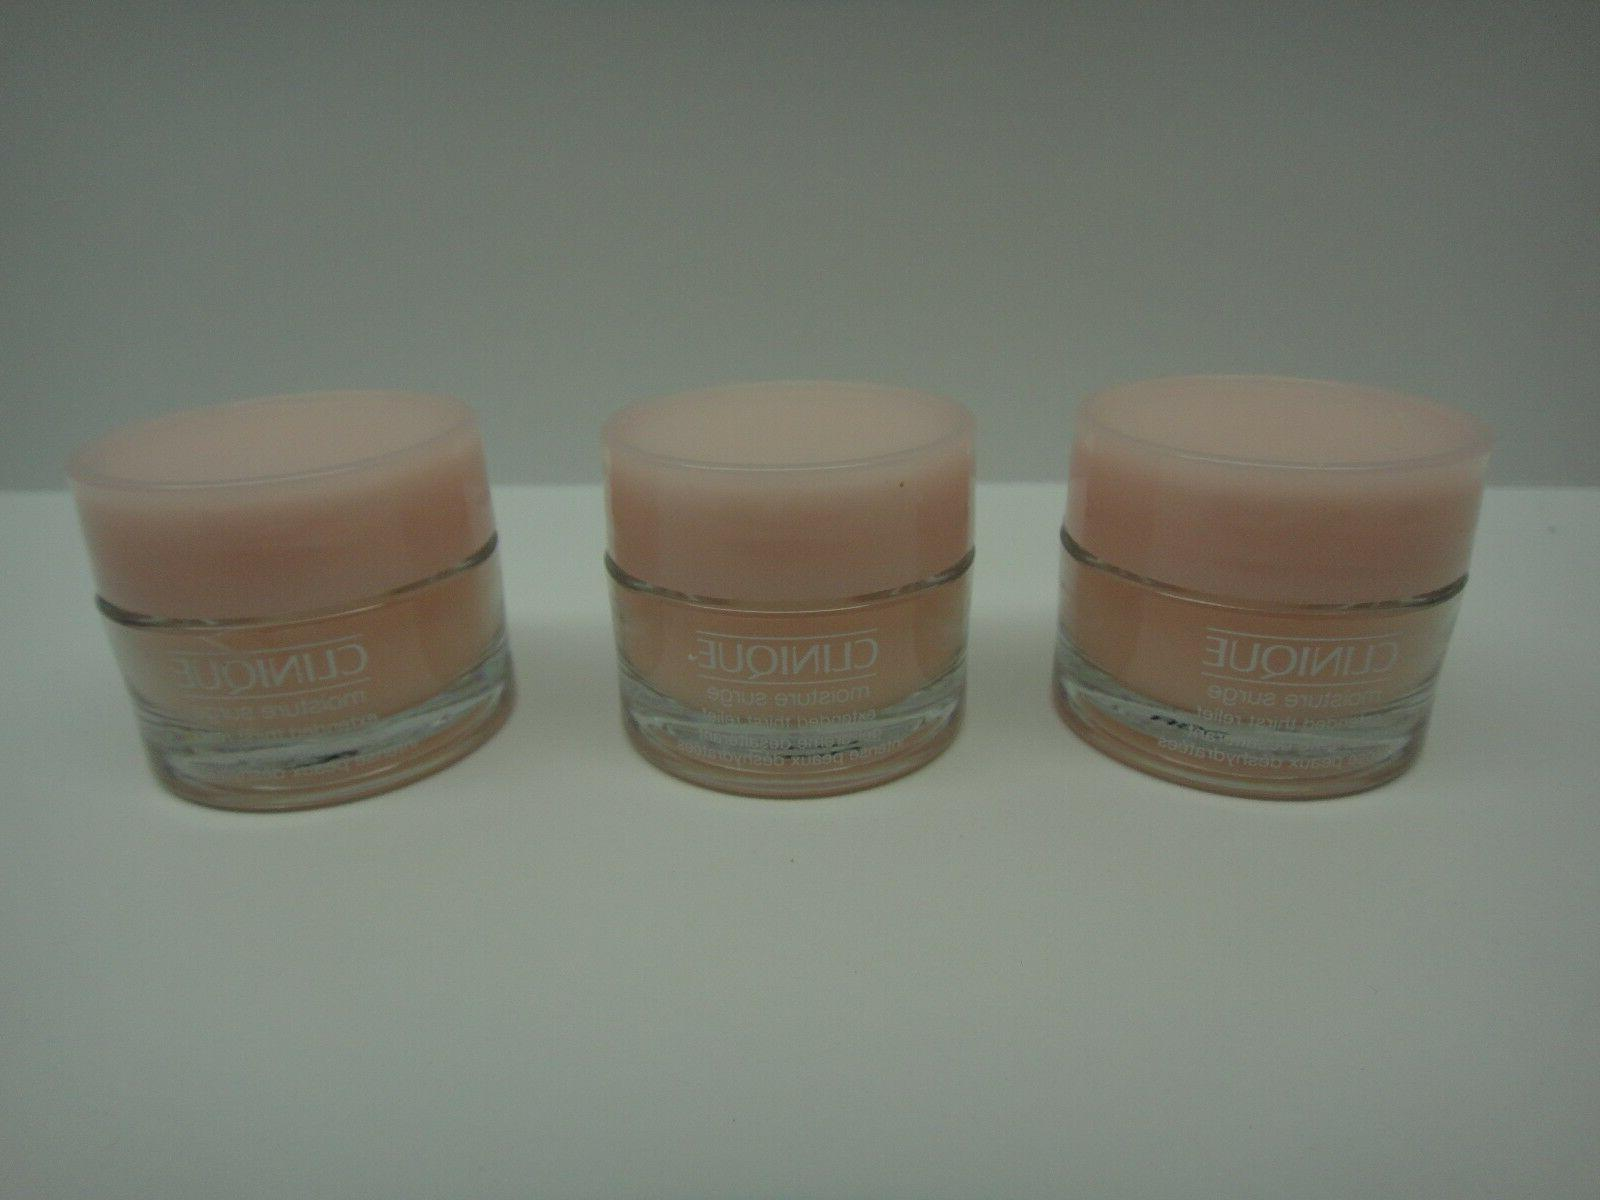 3x moisture surge extended thirst relief gel